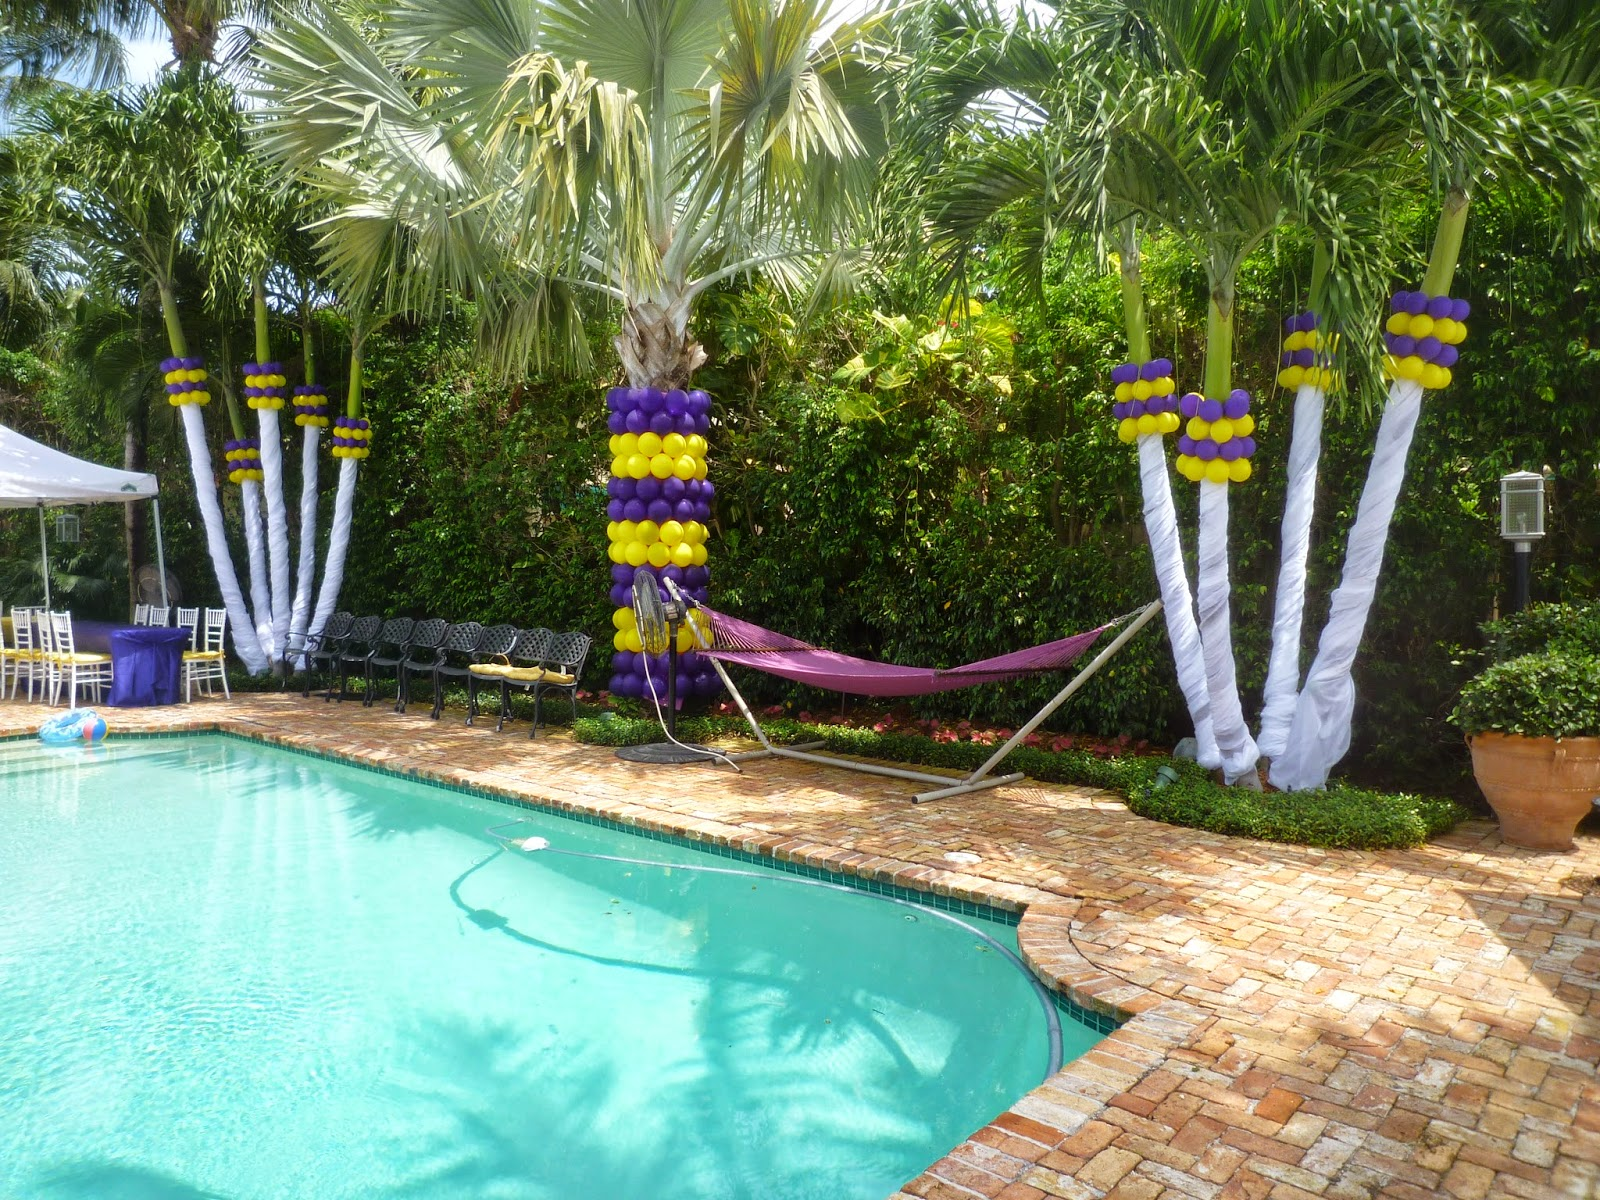 Pool landscaping Free Idea